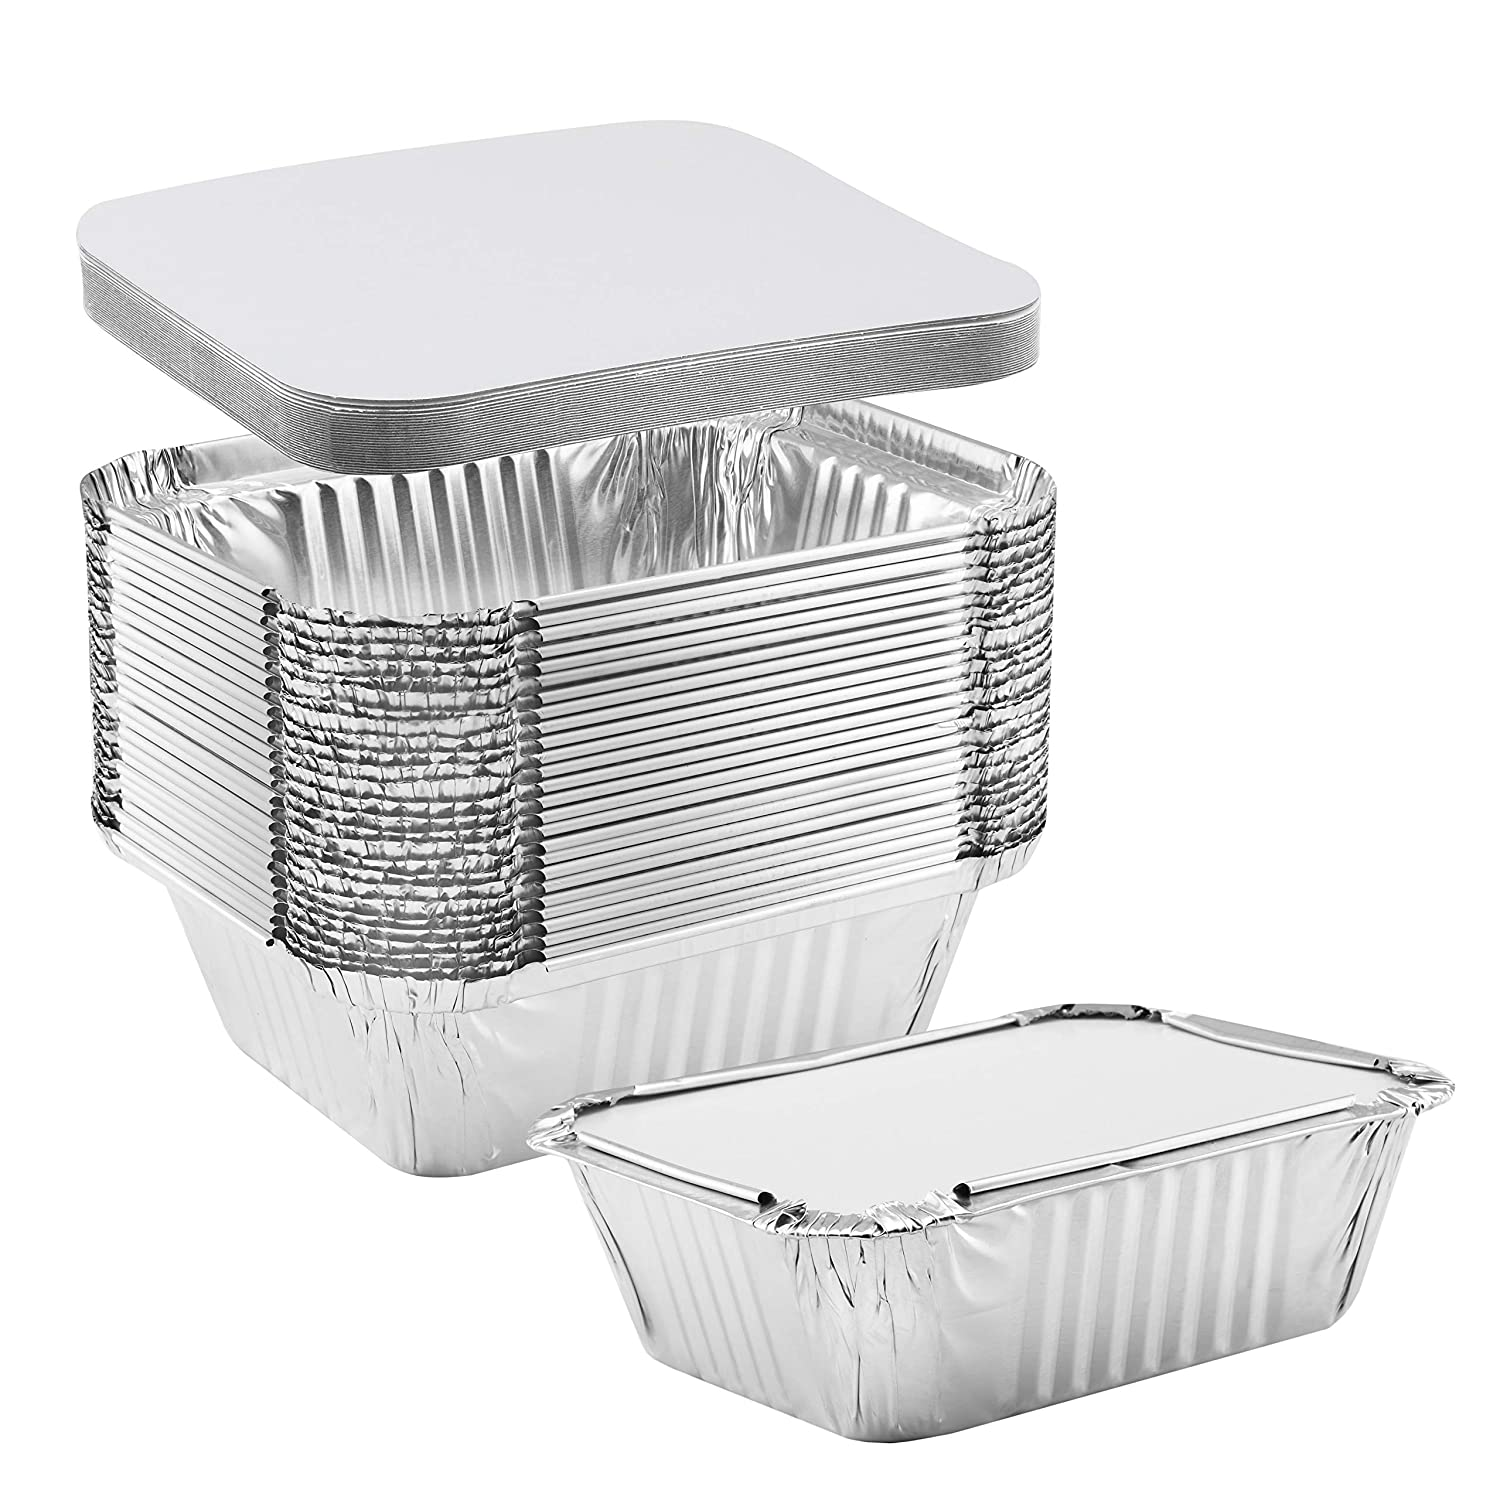 NYHI 50-Pack Heavy Duty Disposable Aluminum Oblong Foil Pans with Lid Covers Recyclable Tin Food Storage Tray Extra-Sturdy Containers for Cooking, Baking, Meal Prep, Takeout - 1 lb